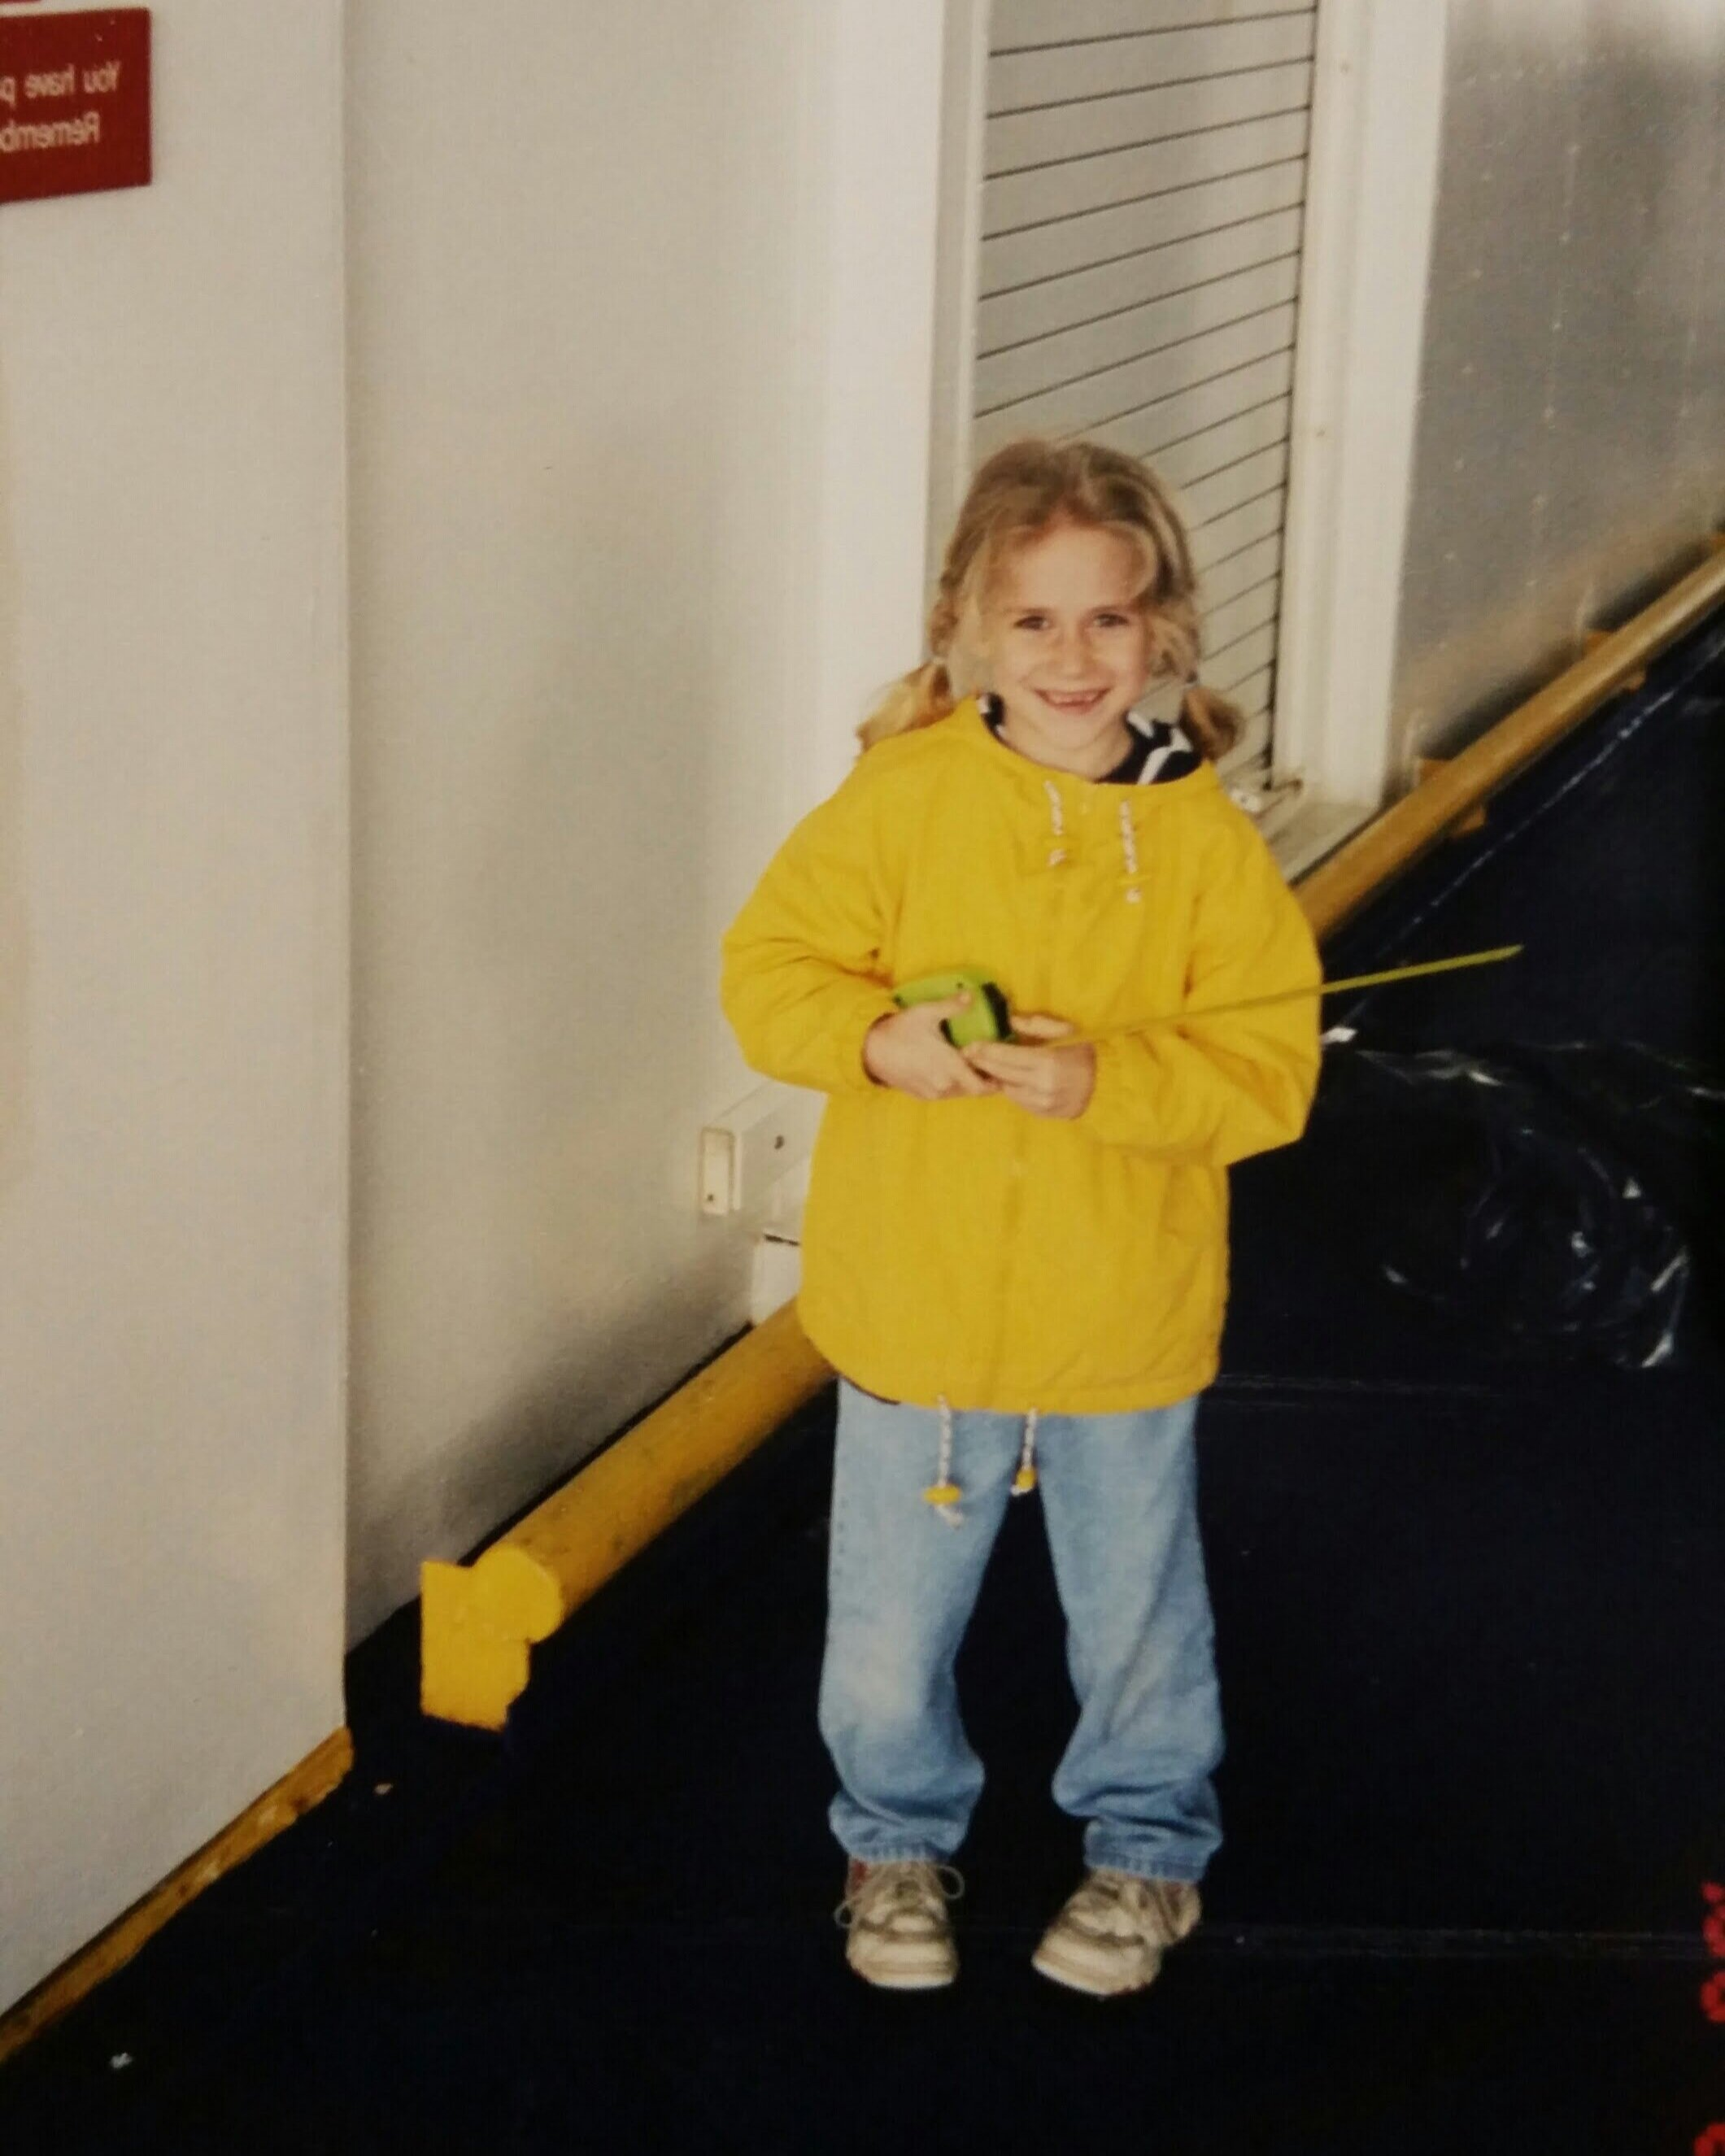 Hannah as a child, about to measure the dimensions of a ship's elevator on her first ship survey with her dad.